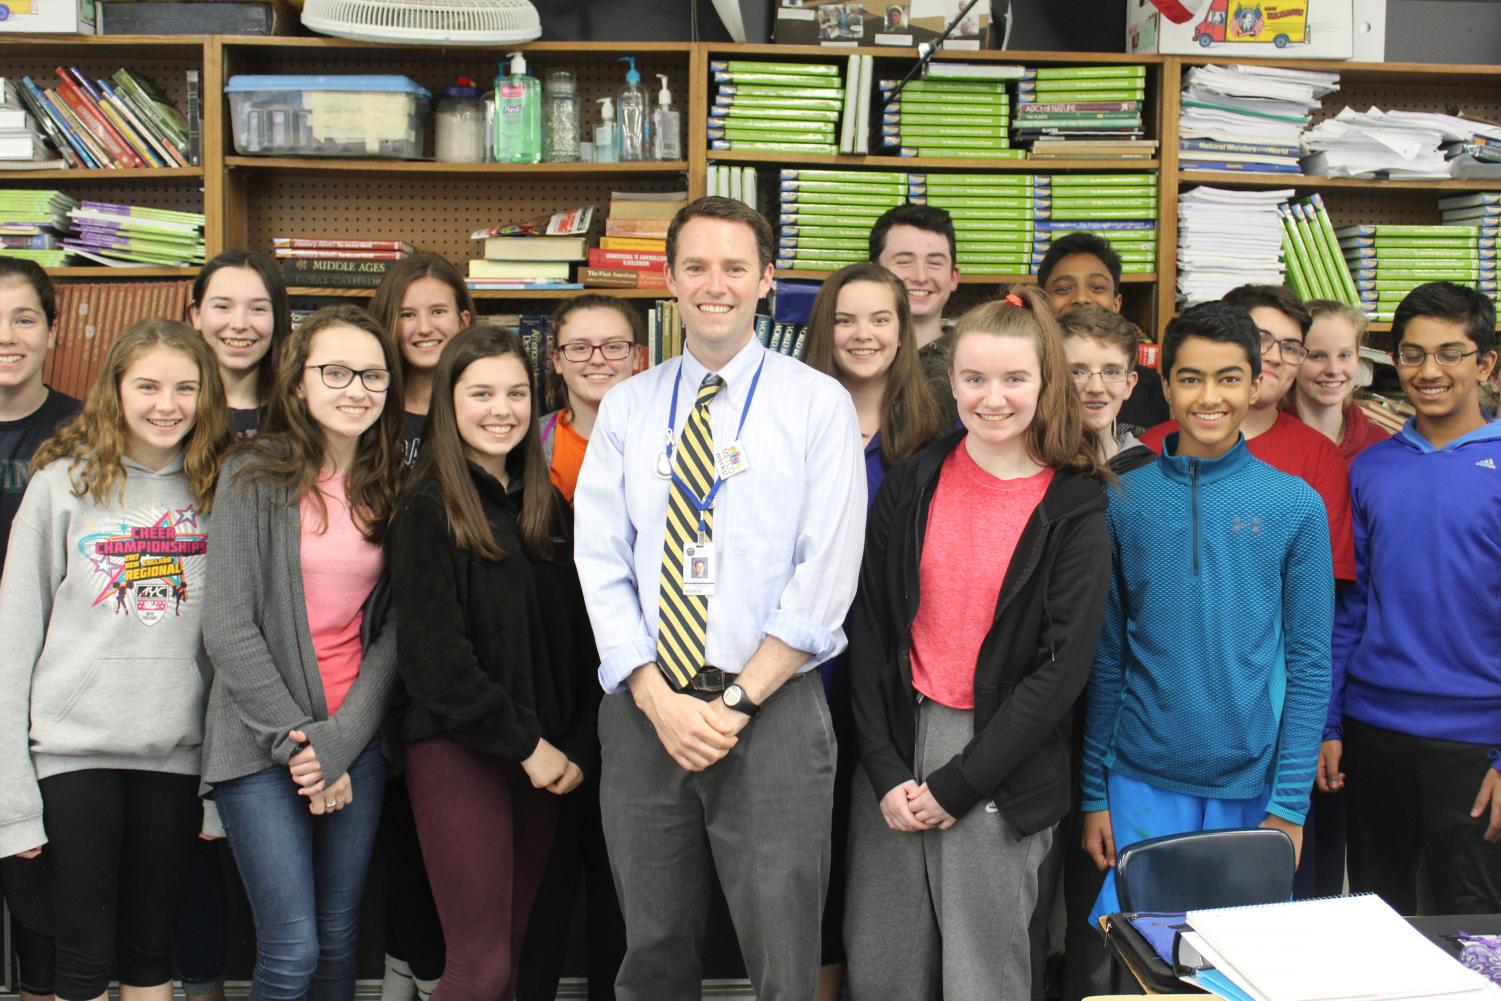 Both William Hahn and JMS' eighth graders will be completing their JMS careers this June.